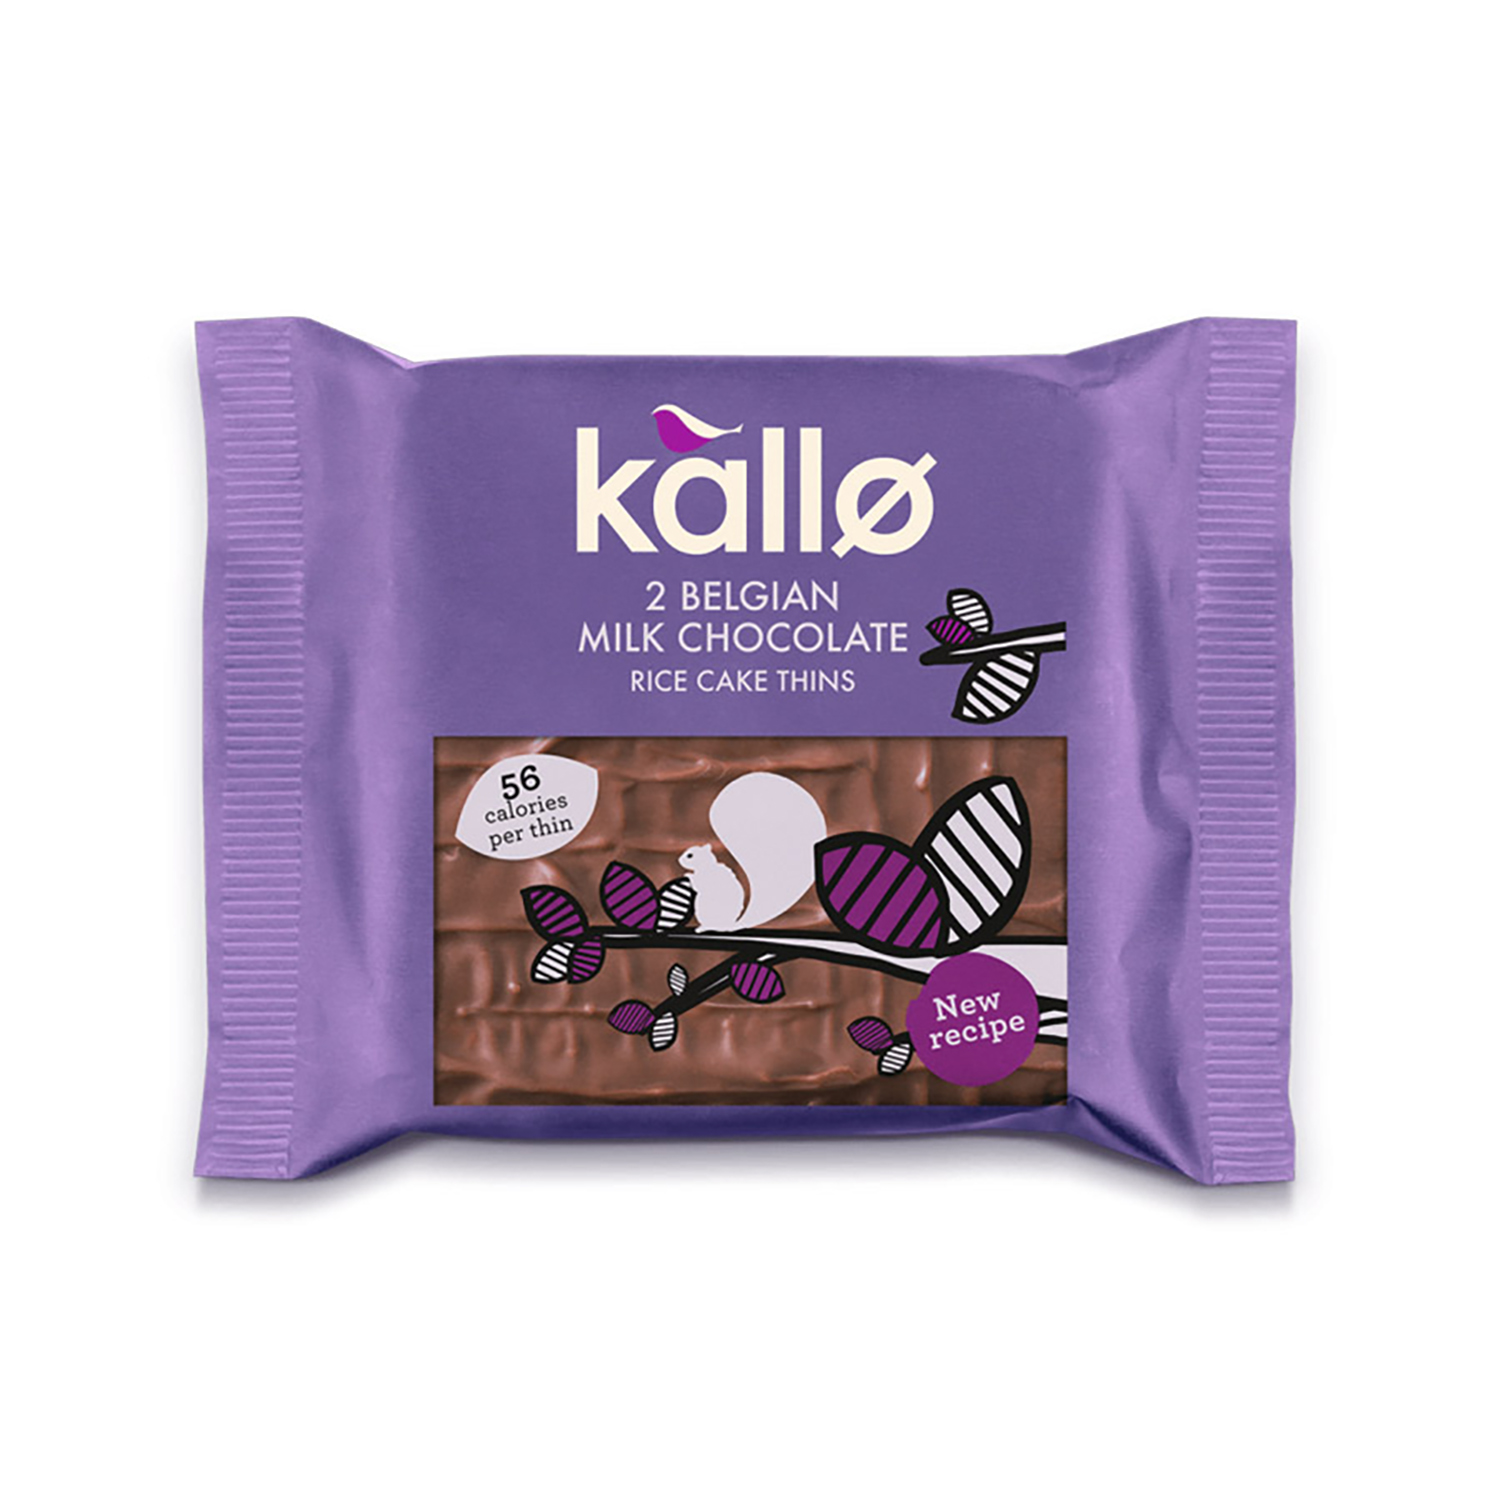 Natural sugars or sweetening products Kallo Gluten-free Rice Cake Thins Milk Chocolate Ref 0401171 Pack 21